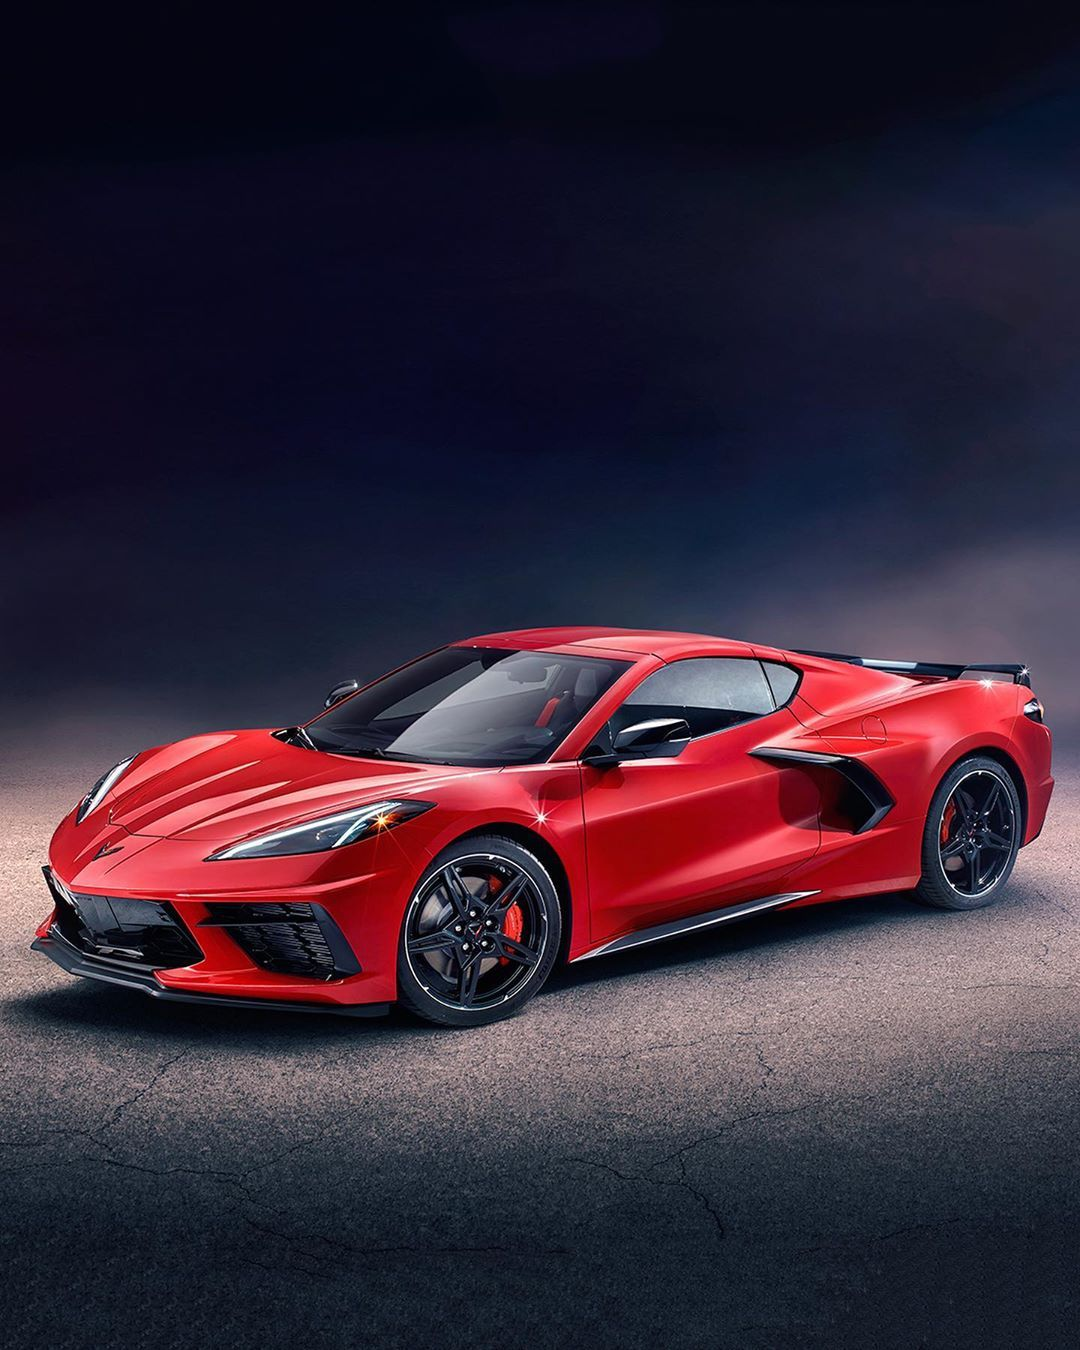 Car And Driver Auf Instagram The New C8 Chevrolet Corvette Is An Engineering Moonshot A Marketing Leap Of Faith And Corvette Stingray Super Cars Corvette